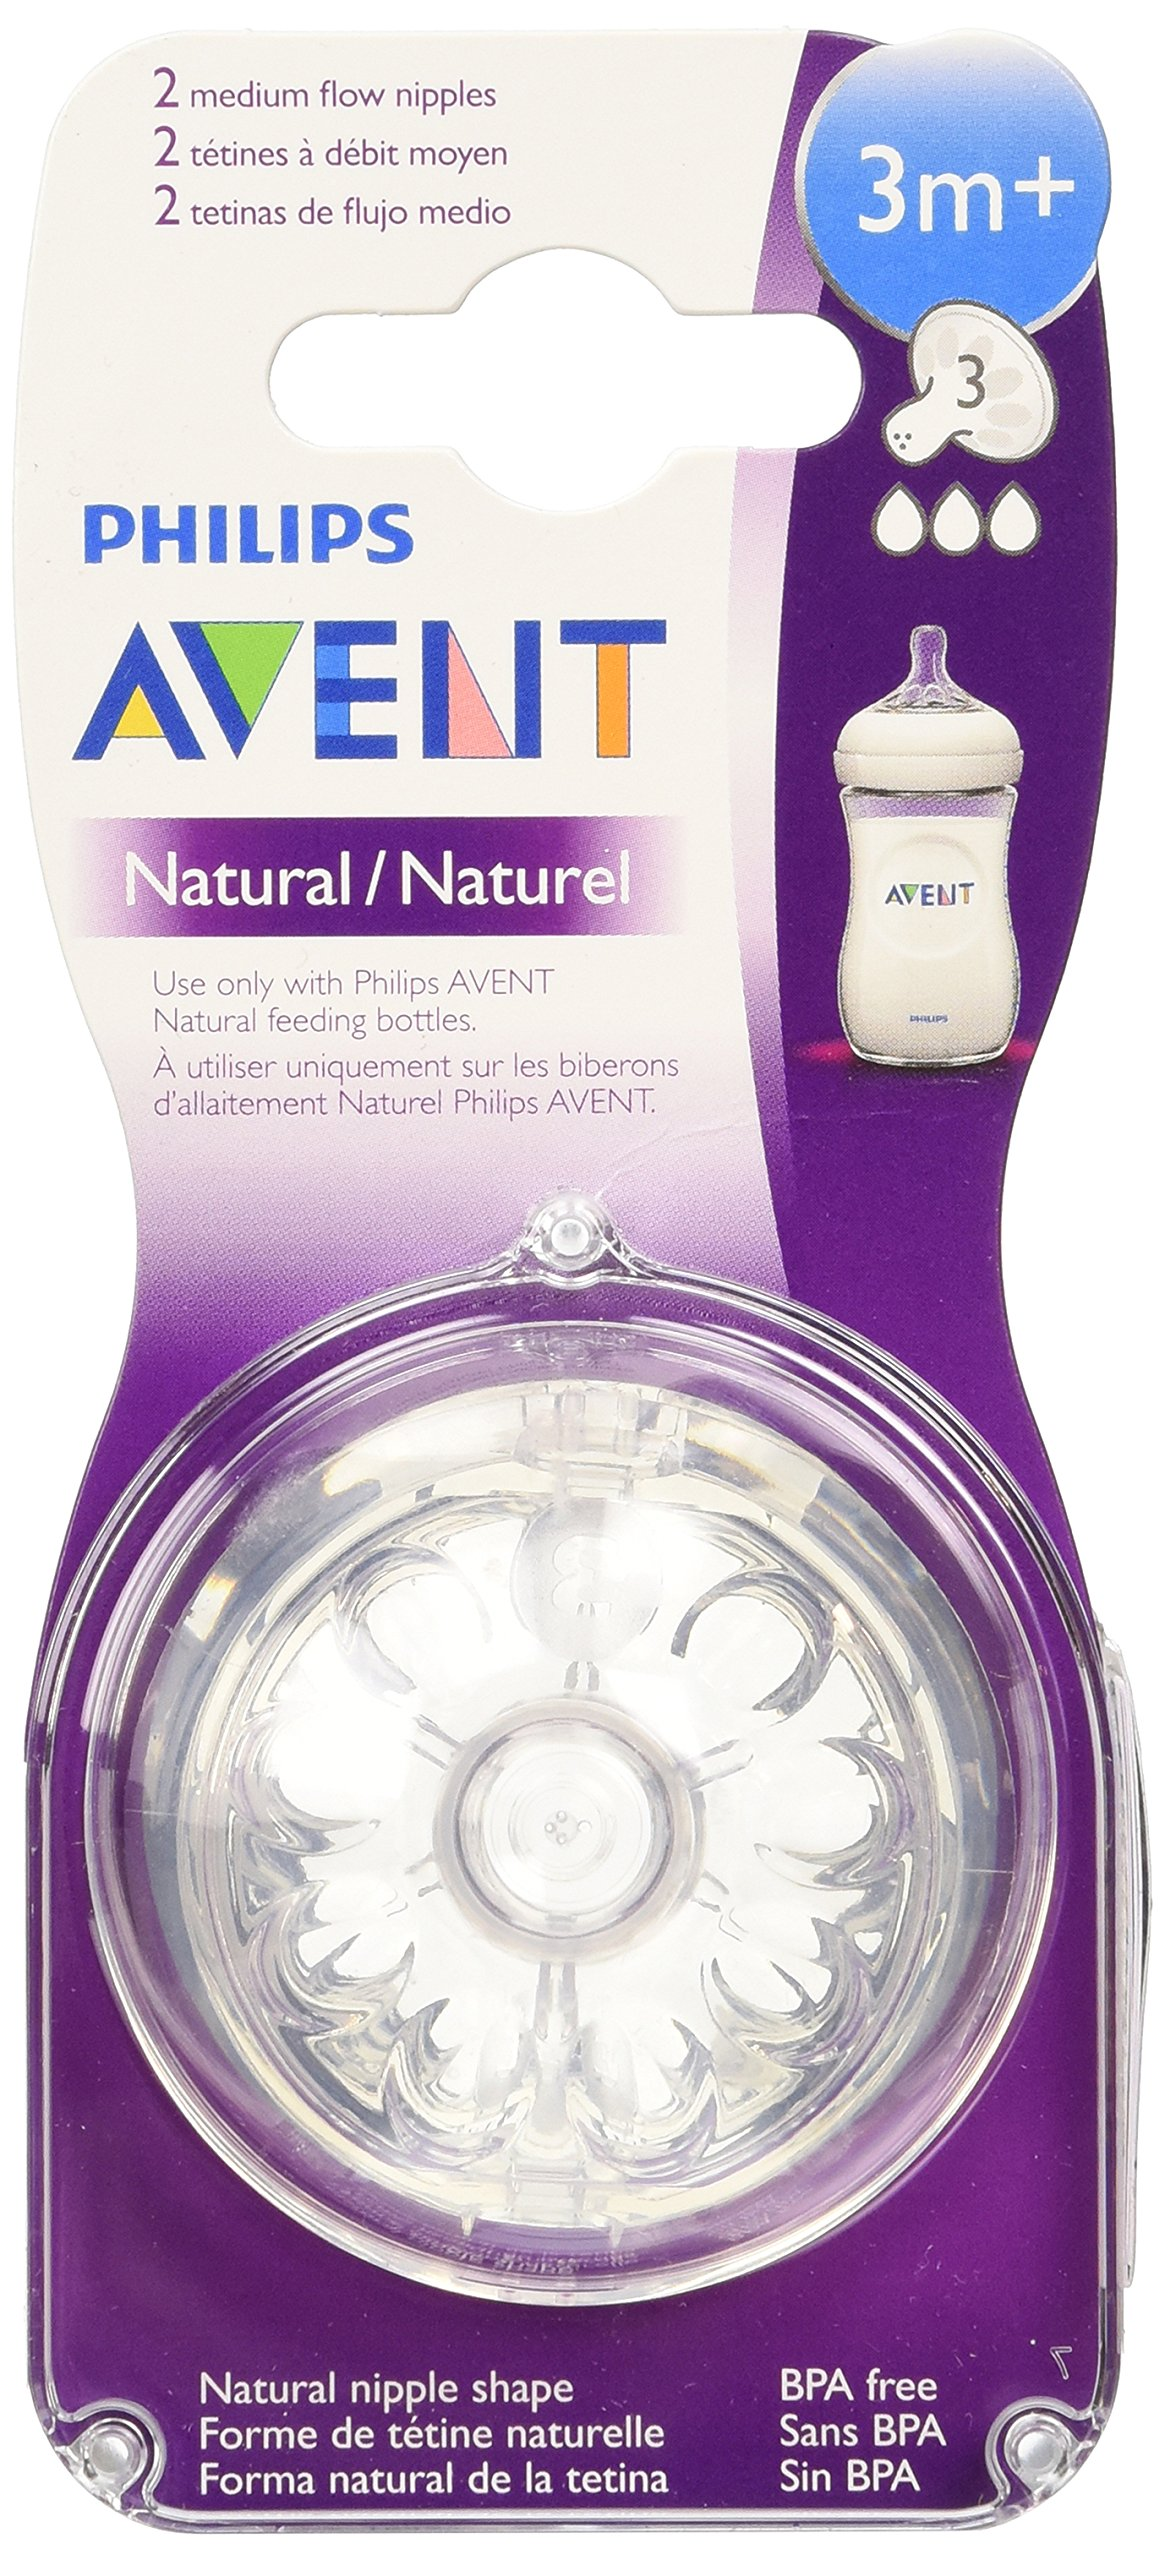 Philips Avent BPA Free Natural Medium Flow Nipples, 3 month+, 2 Count